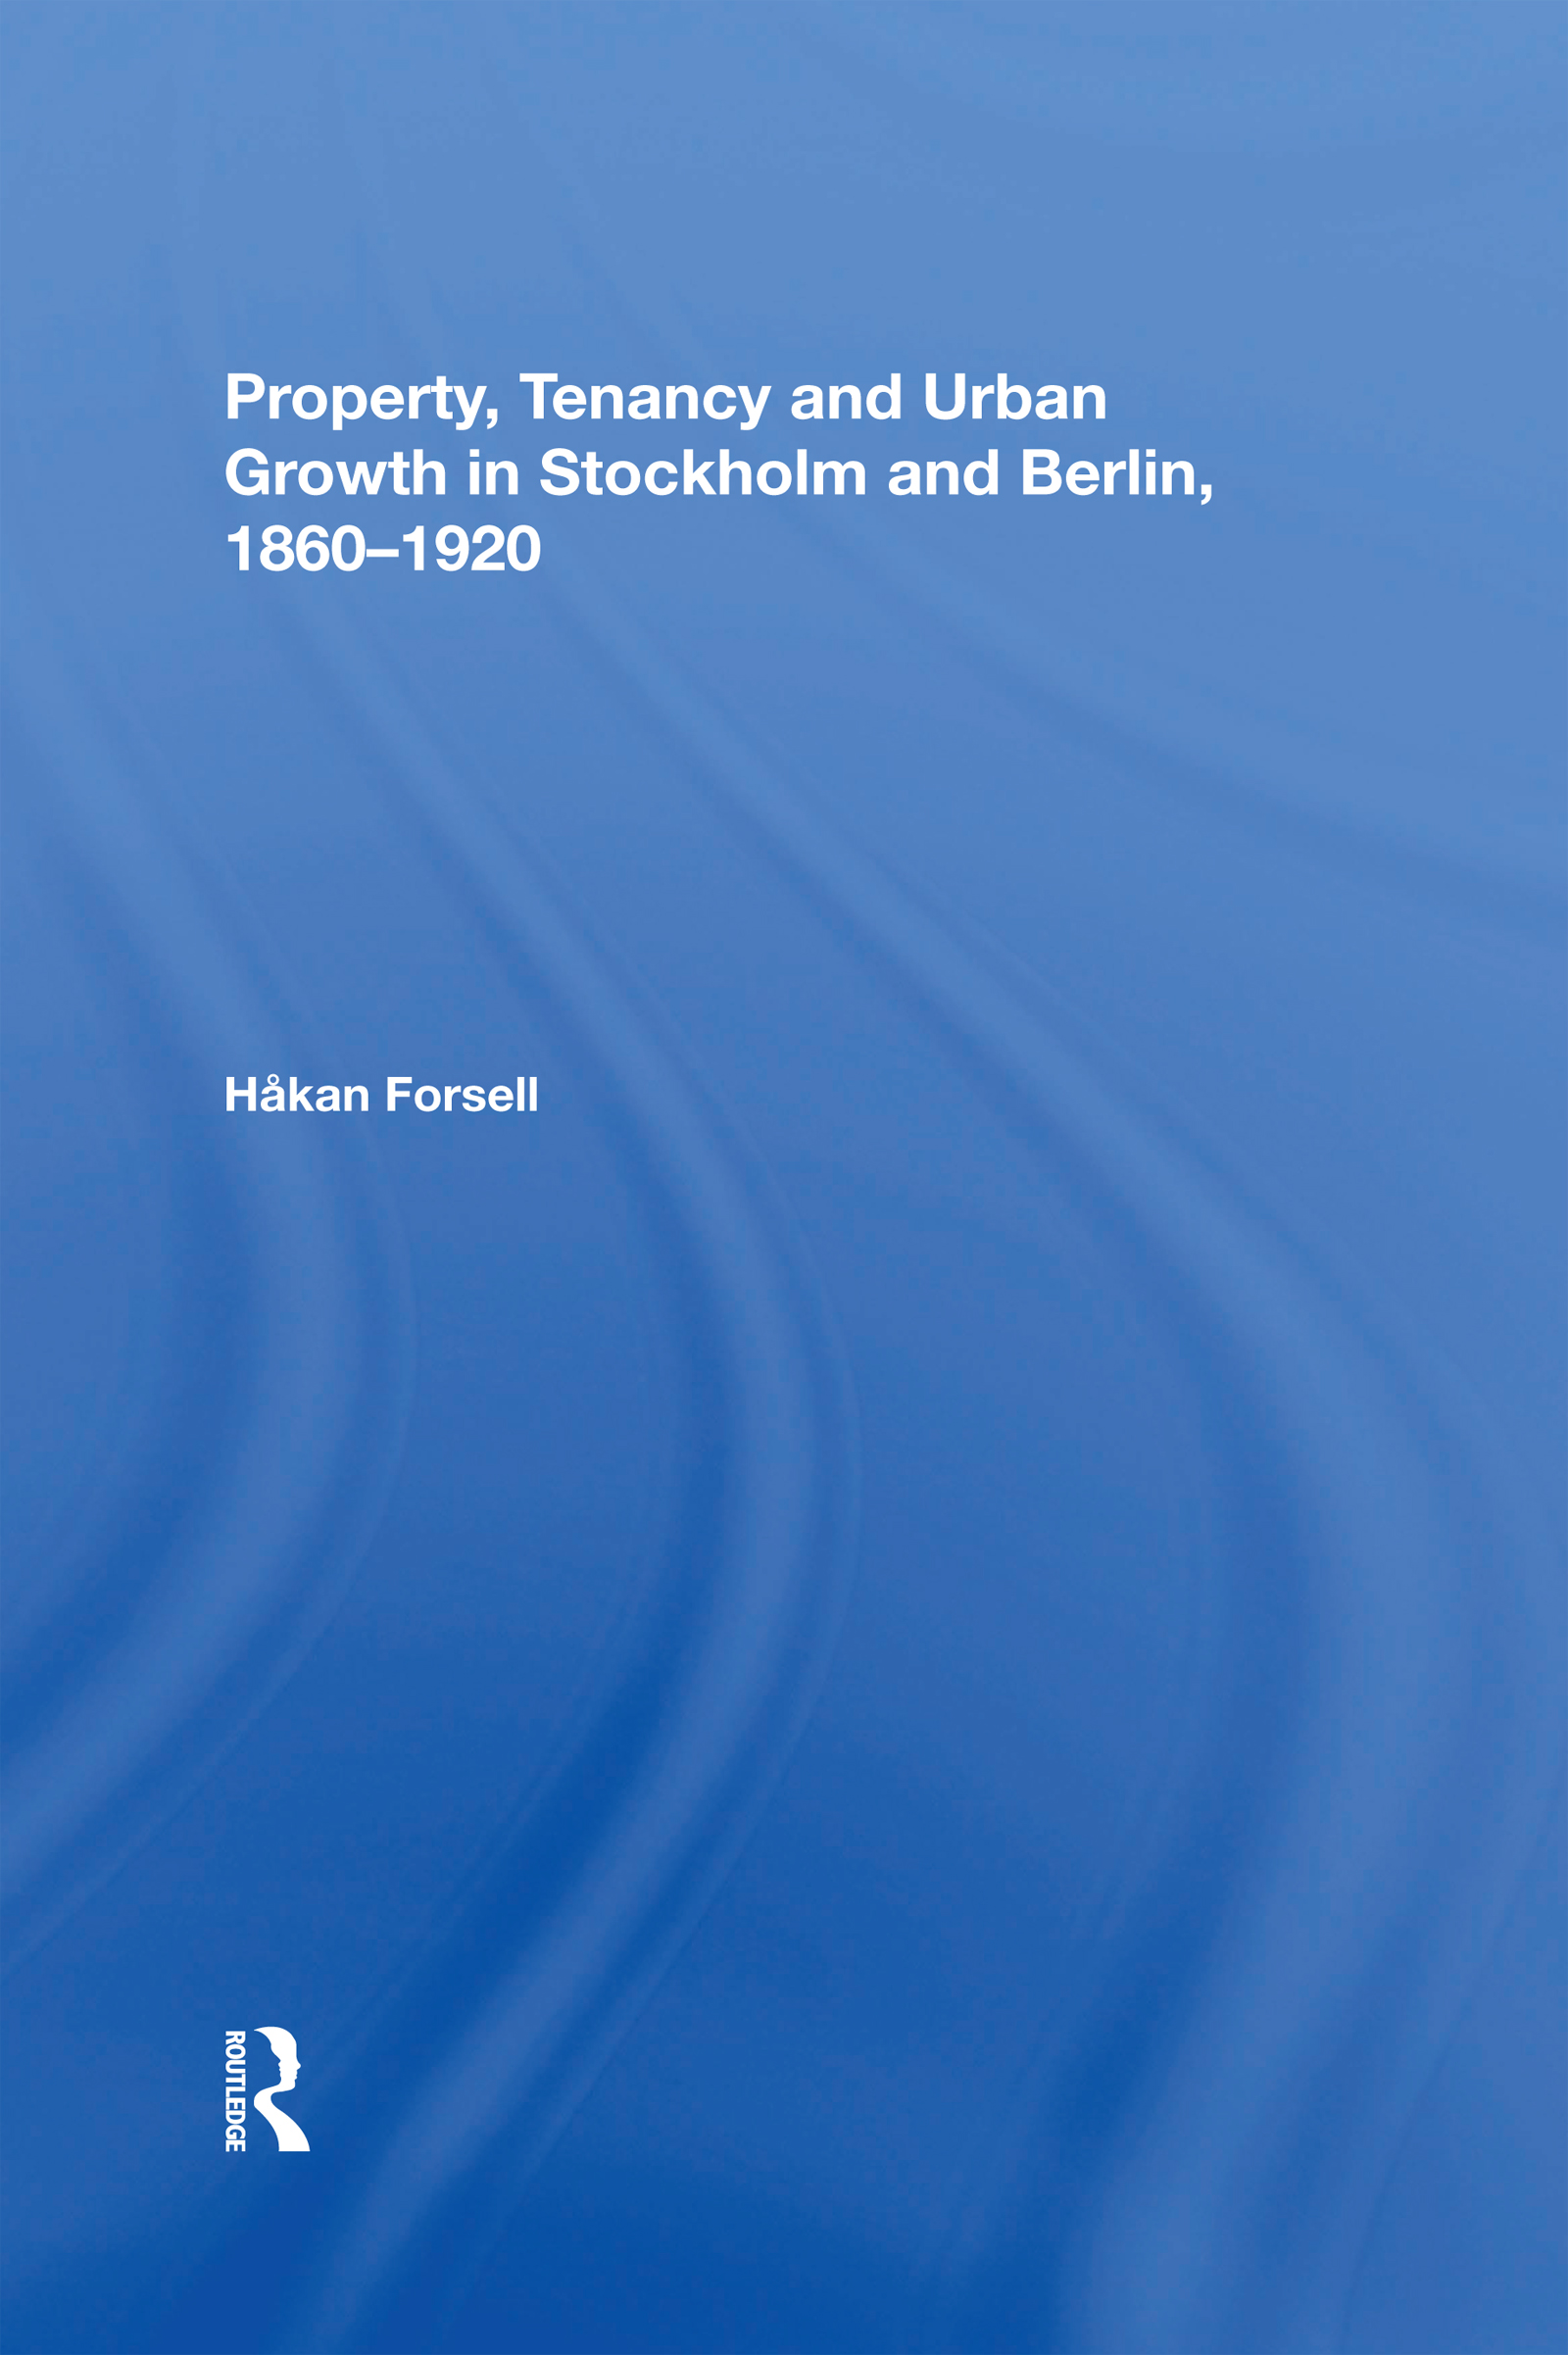 Property, Tenancy and Urban Growth in Stockholm and Berlin, 1860�1920